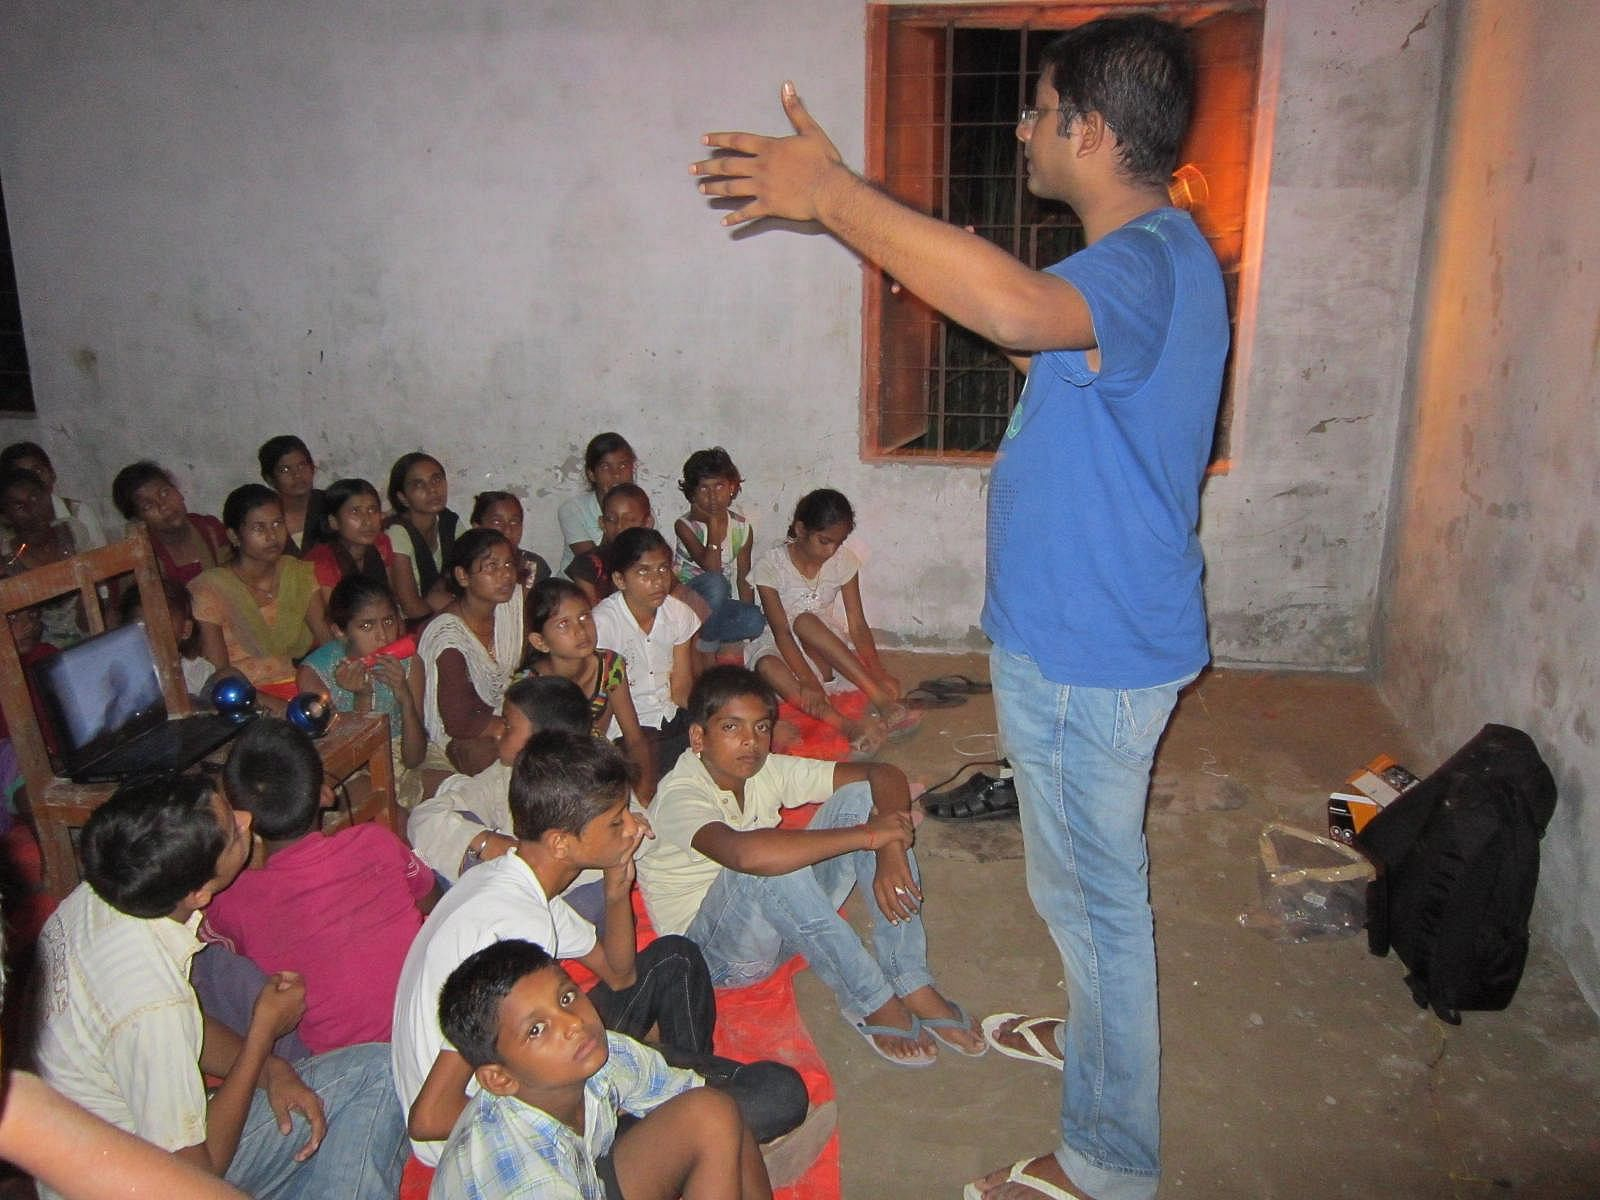 A night class in progress with more than 100 children from different villages - video from a volunteer based in Germany - Sept 07th, 2013